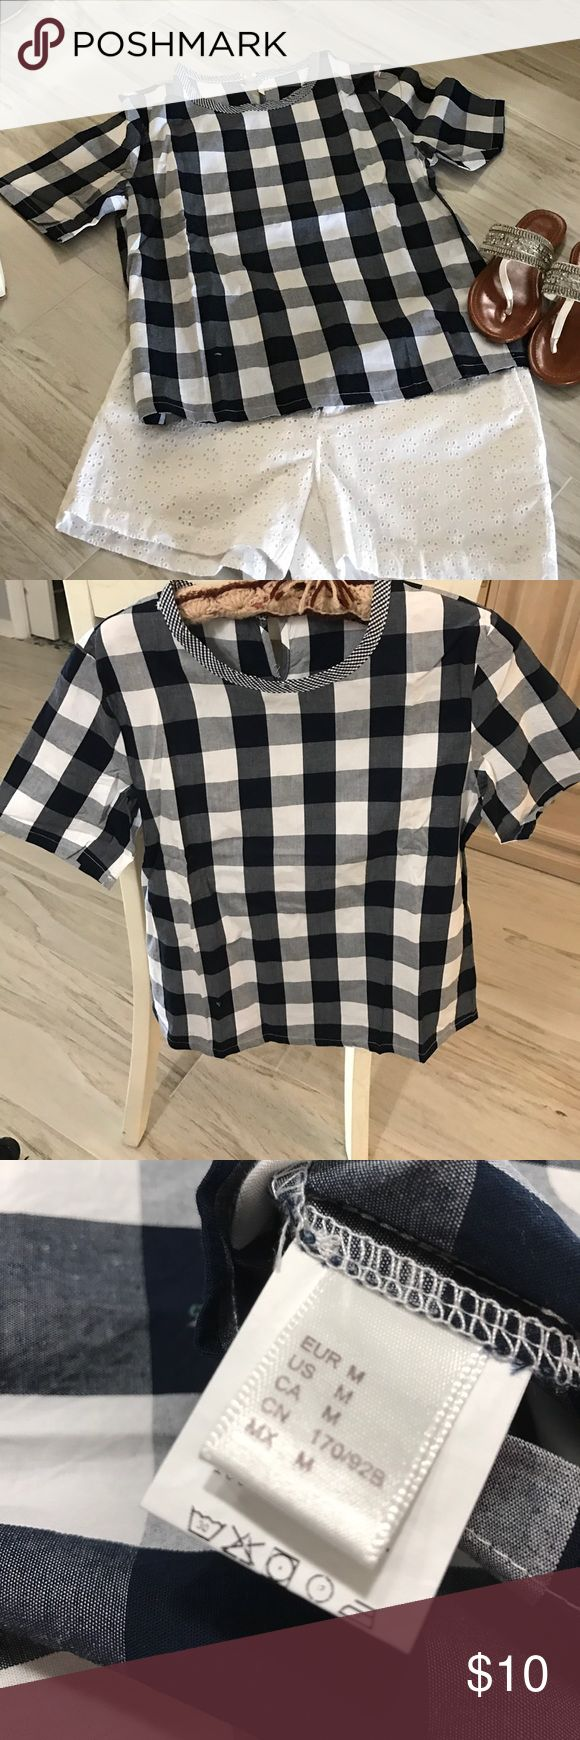 NWOT blue and white checked Blue and white checked top. Size medium. Never worn Tops